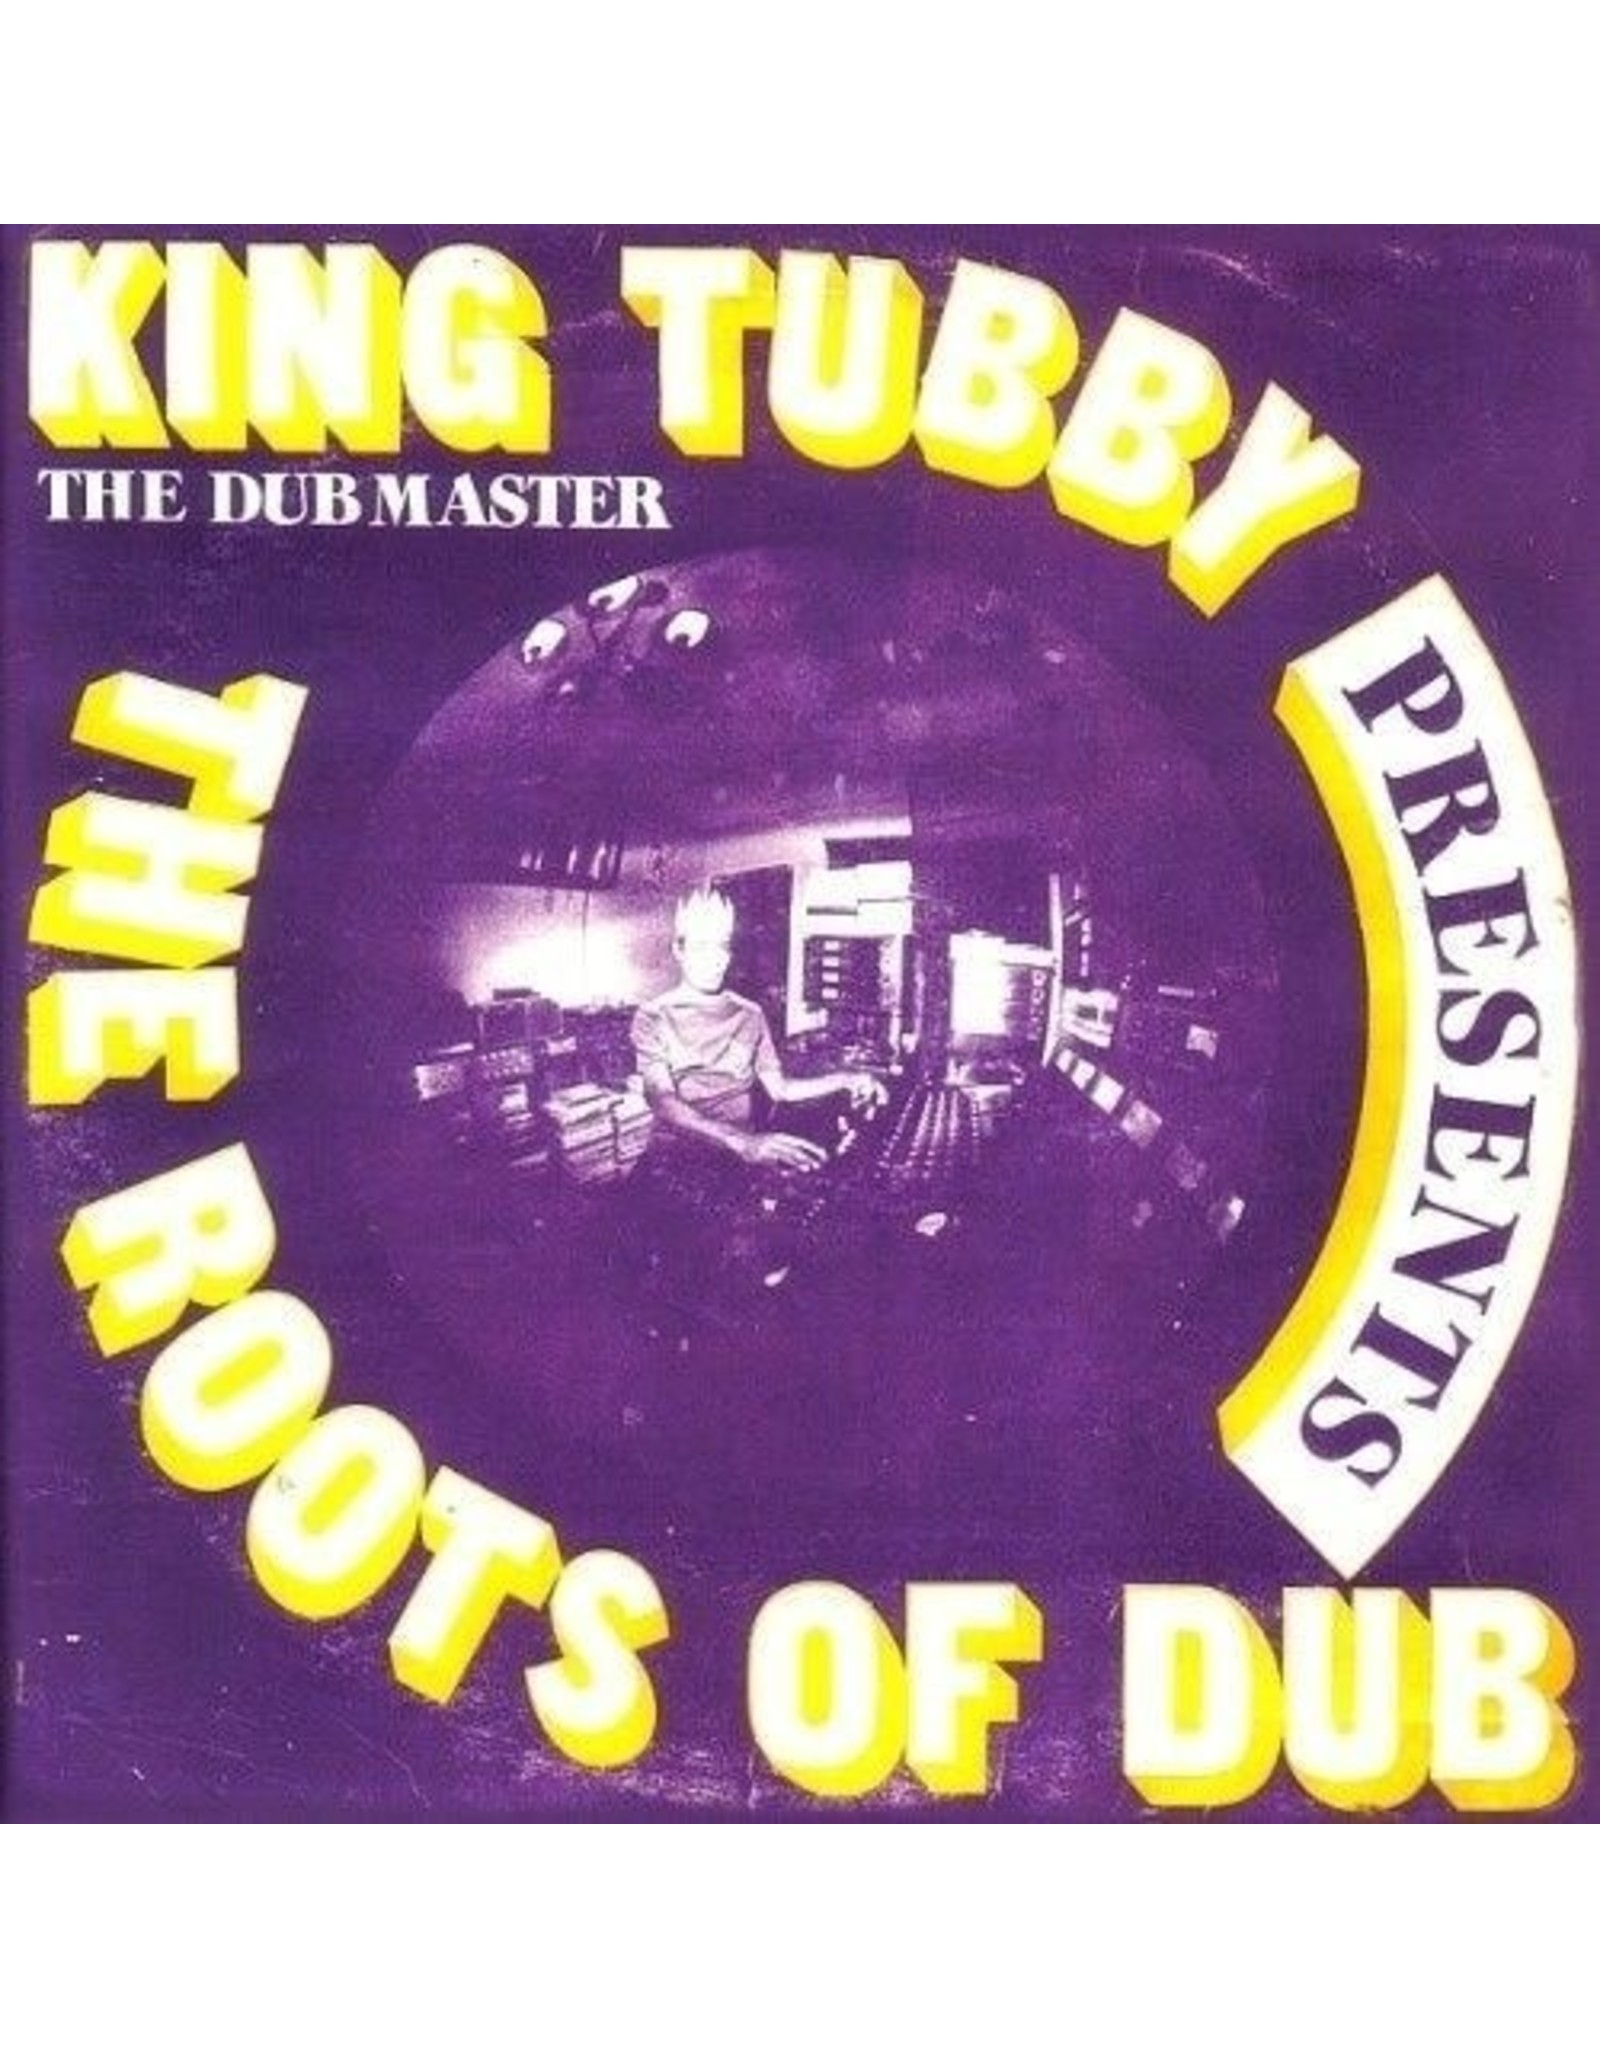 New Vinyl King Tubby - Roots Of Dub LP